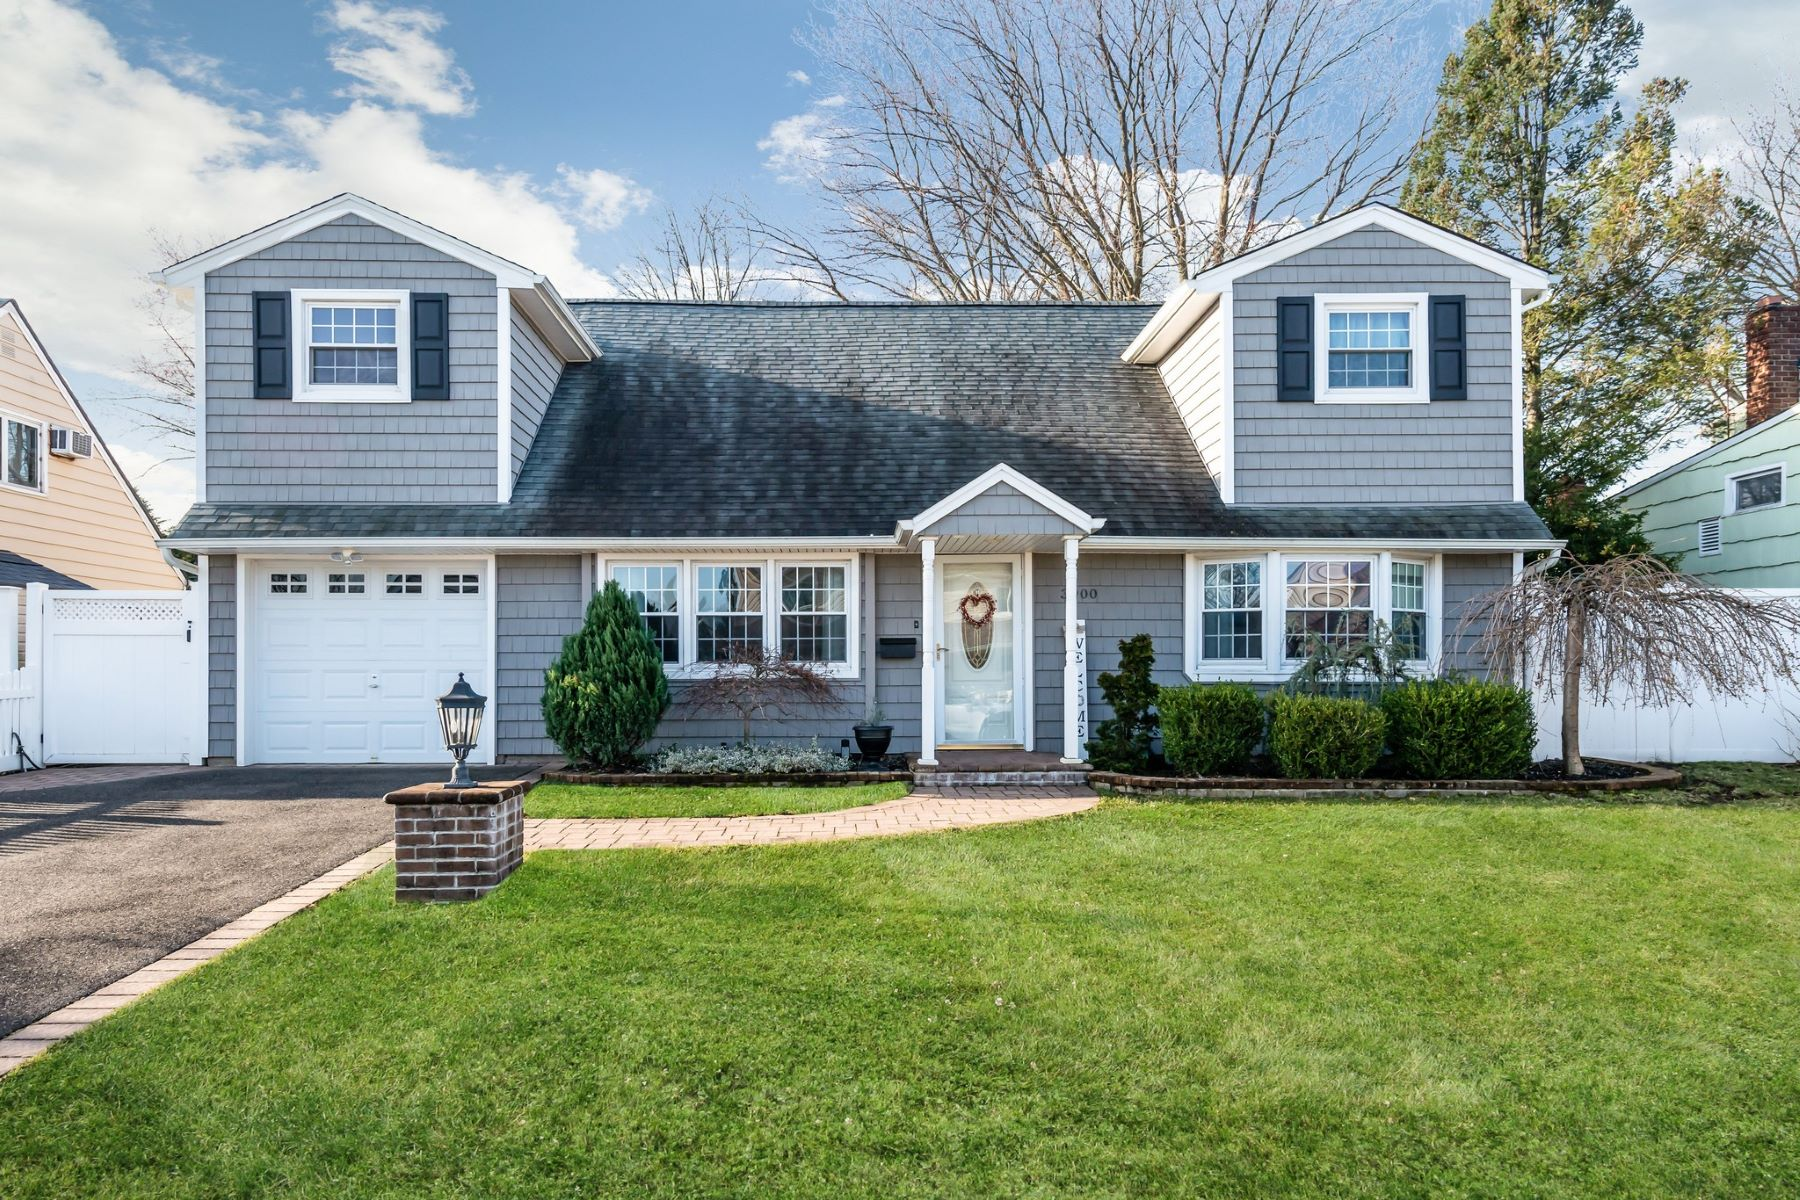 Single Family Homes for Active at Bethpage 3900 Avoca Avenue Bethpage, New York 11714 United States